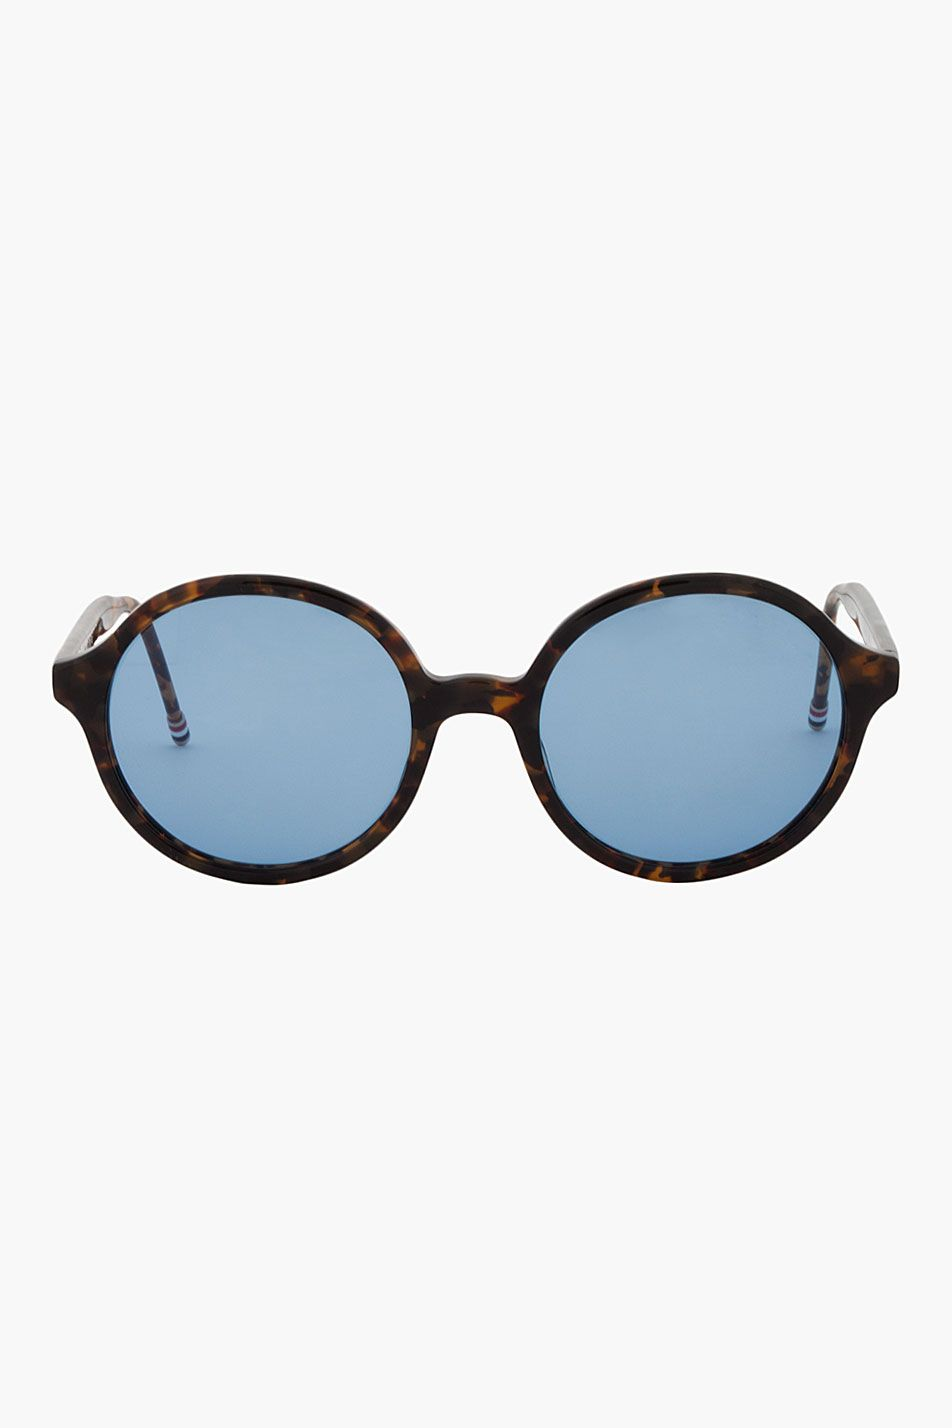 20278baeb354 Thom Browne Black And Brown Tokyo Tortoise Round Sunglasses - Thom Browne  Black And Brown Tokyo Tortoise Round Sunglasses Thom Browne Round lens  sunglasses ...